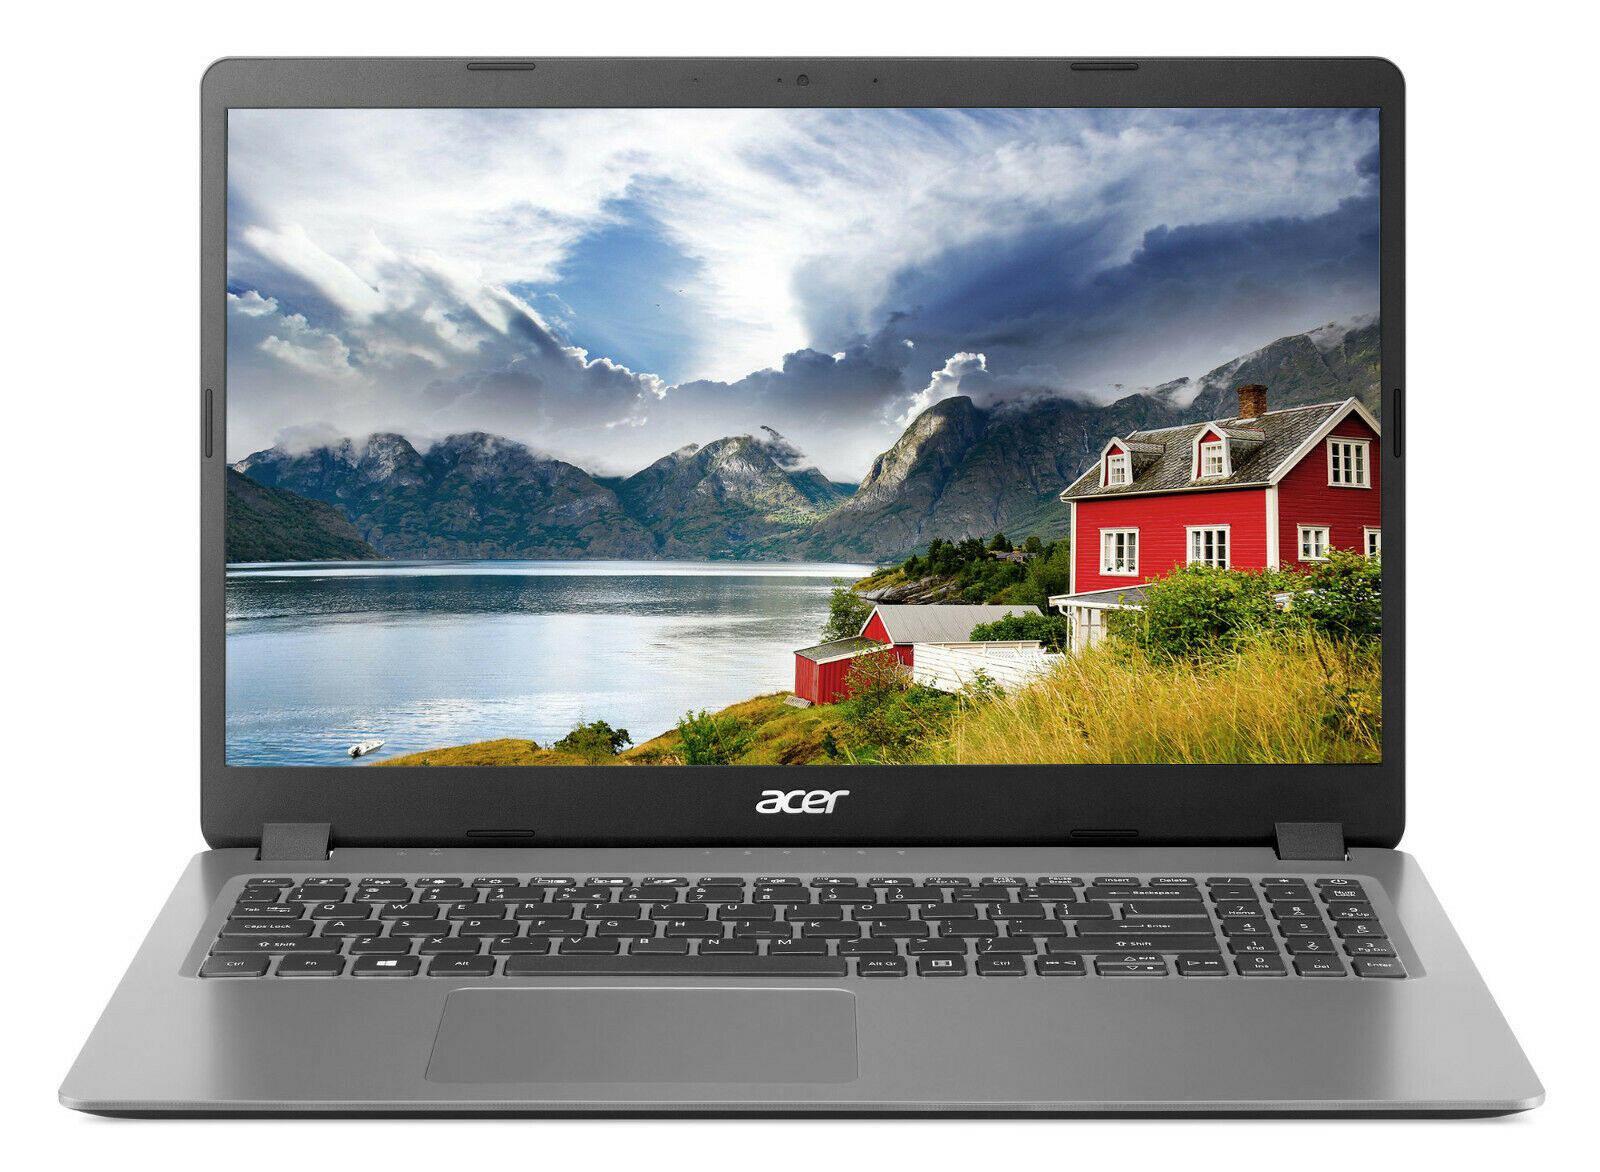 "Laptop Windows - NEW Acer Aspire 3 15.6"" FHD Intel i5-1035G1 8GB DDR4 256GB SSD HDMI Windows 10"